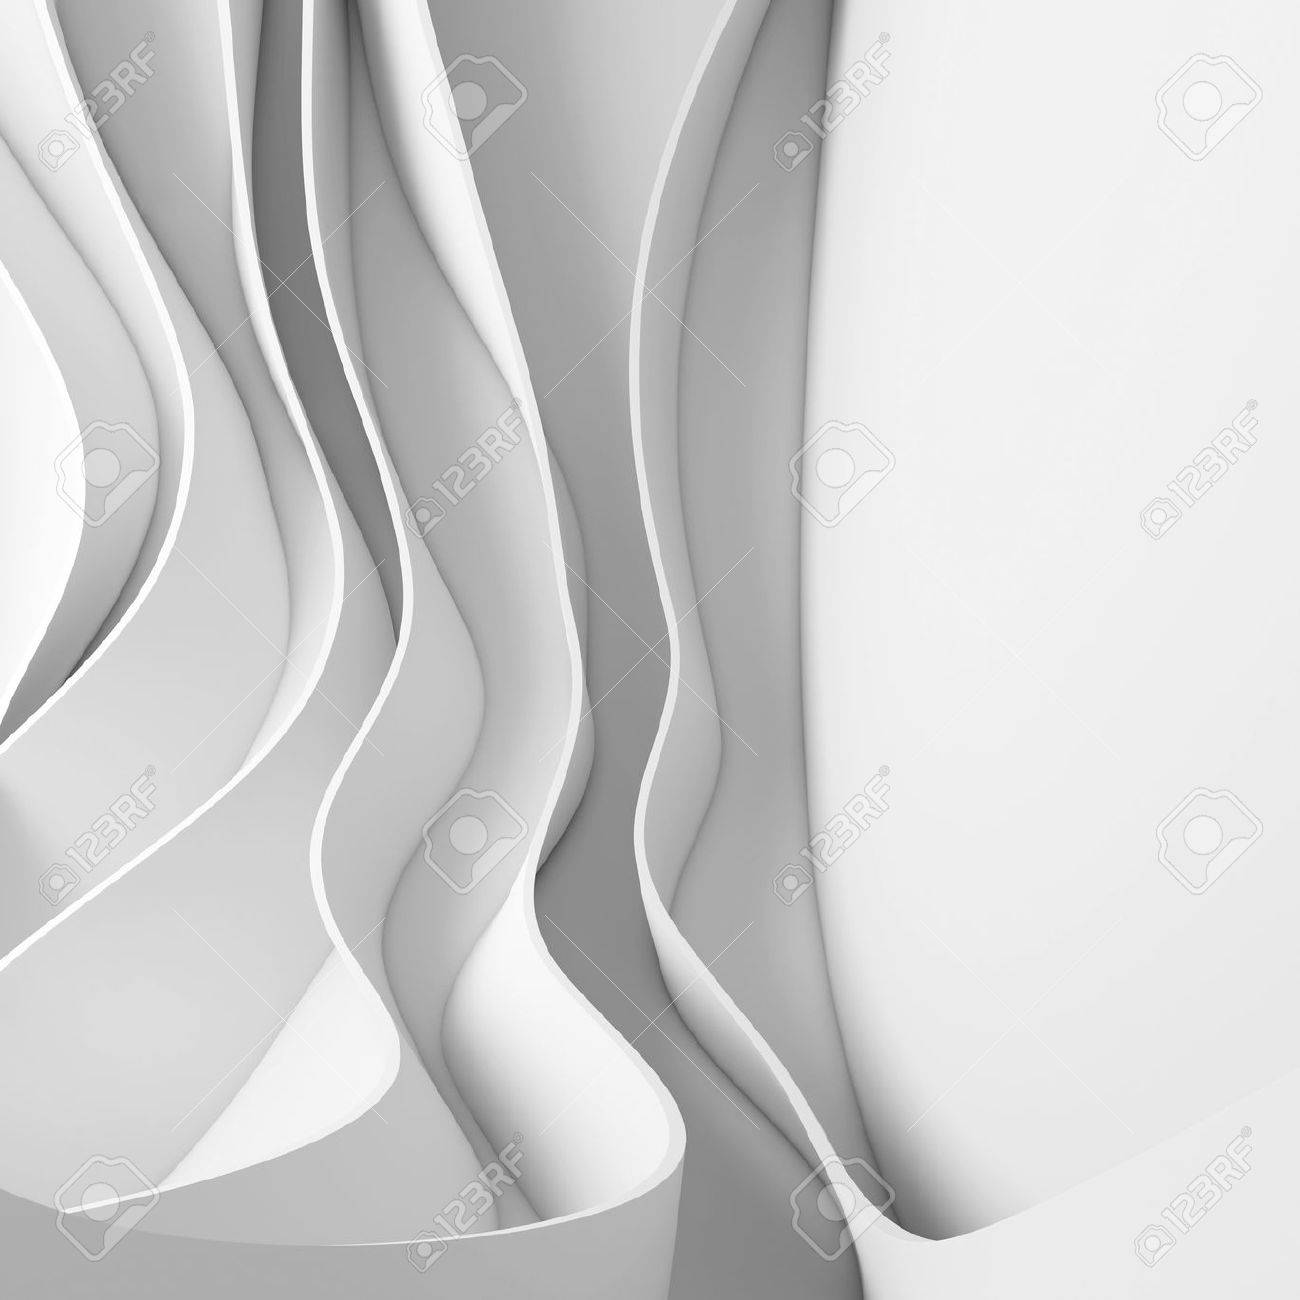 Abstract Architecture Background Stock Photo - 11767085